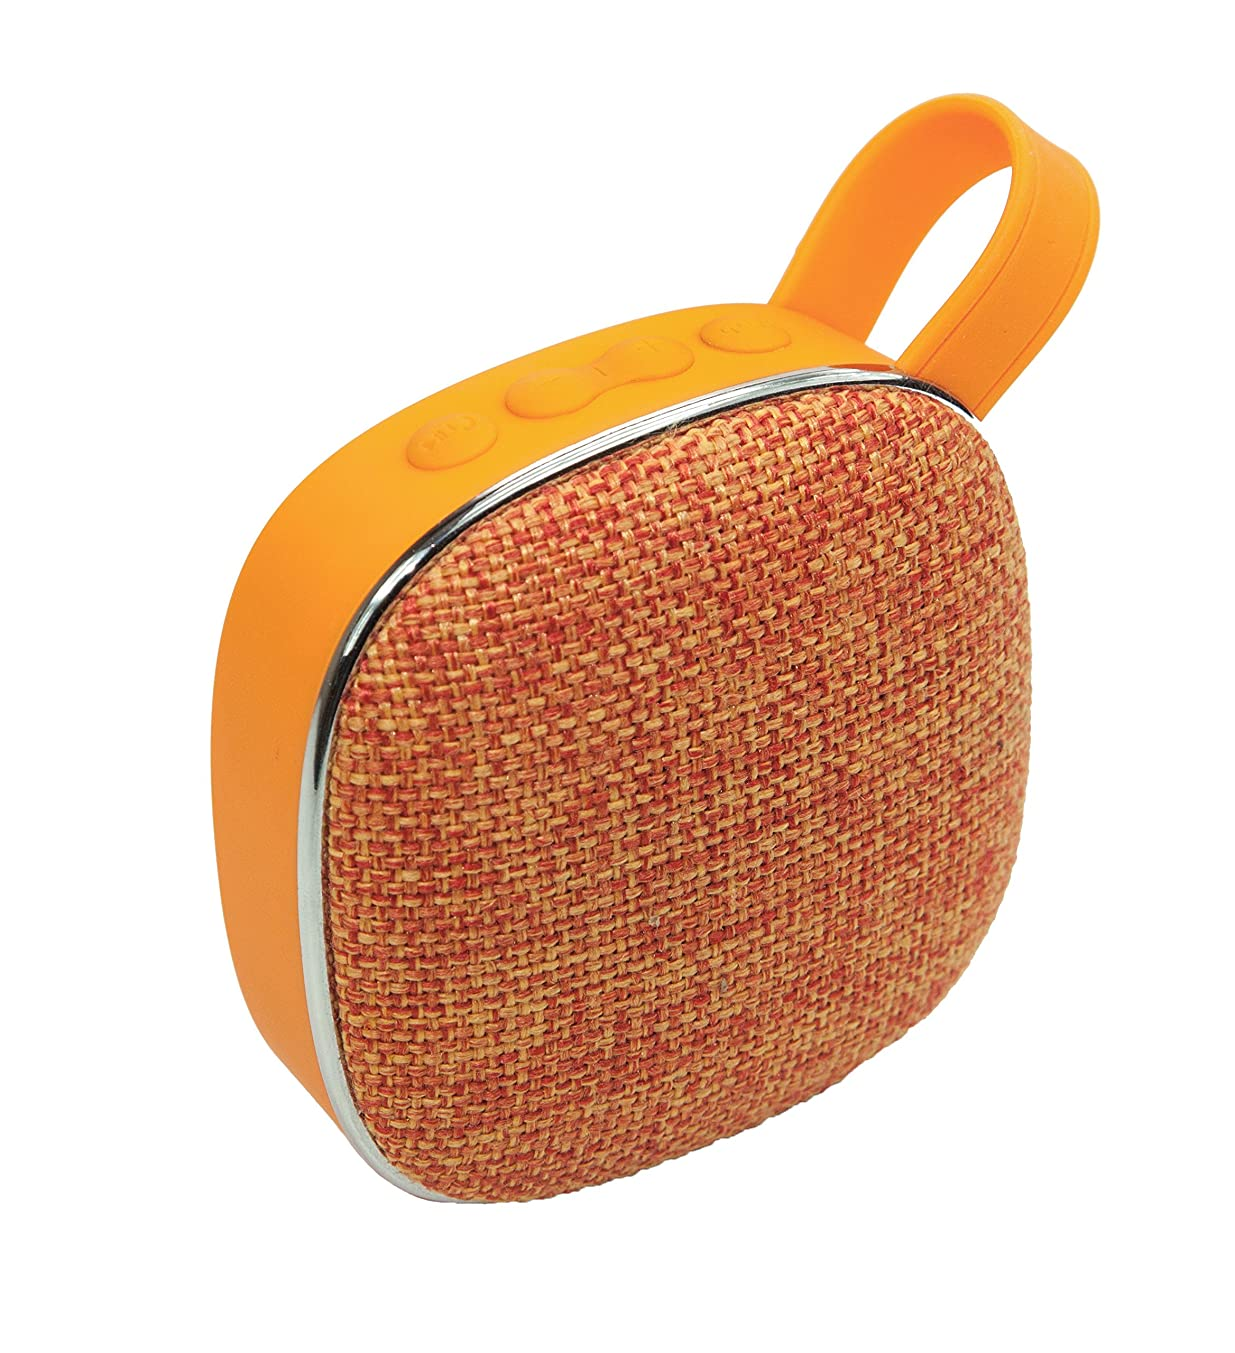 Portable Wireless Bluetooth 3W Speaker with FM Radio, Built-in Microphone, High Fidelity Sound, Powerful Bass, Micro SD Playback, USB Charging, Hands Free Calls, Cloth Cover, Carry Strap (Orange)